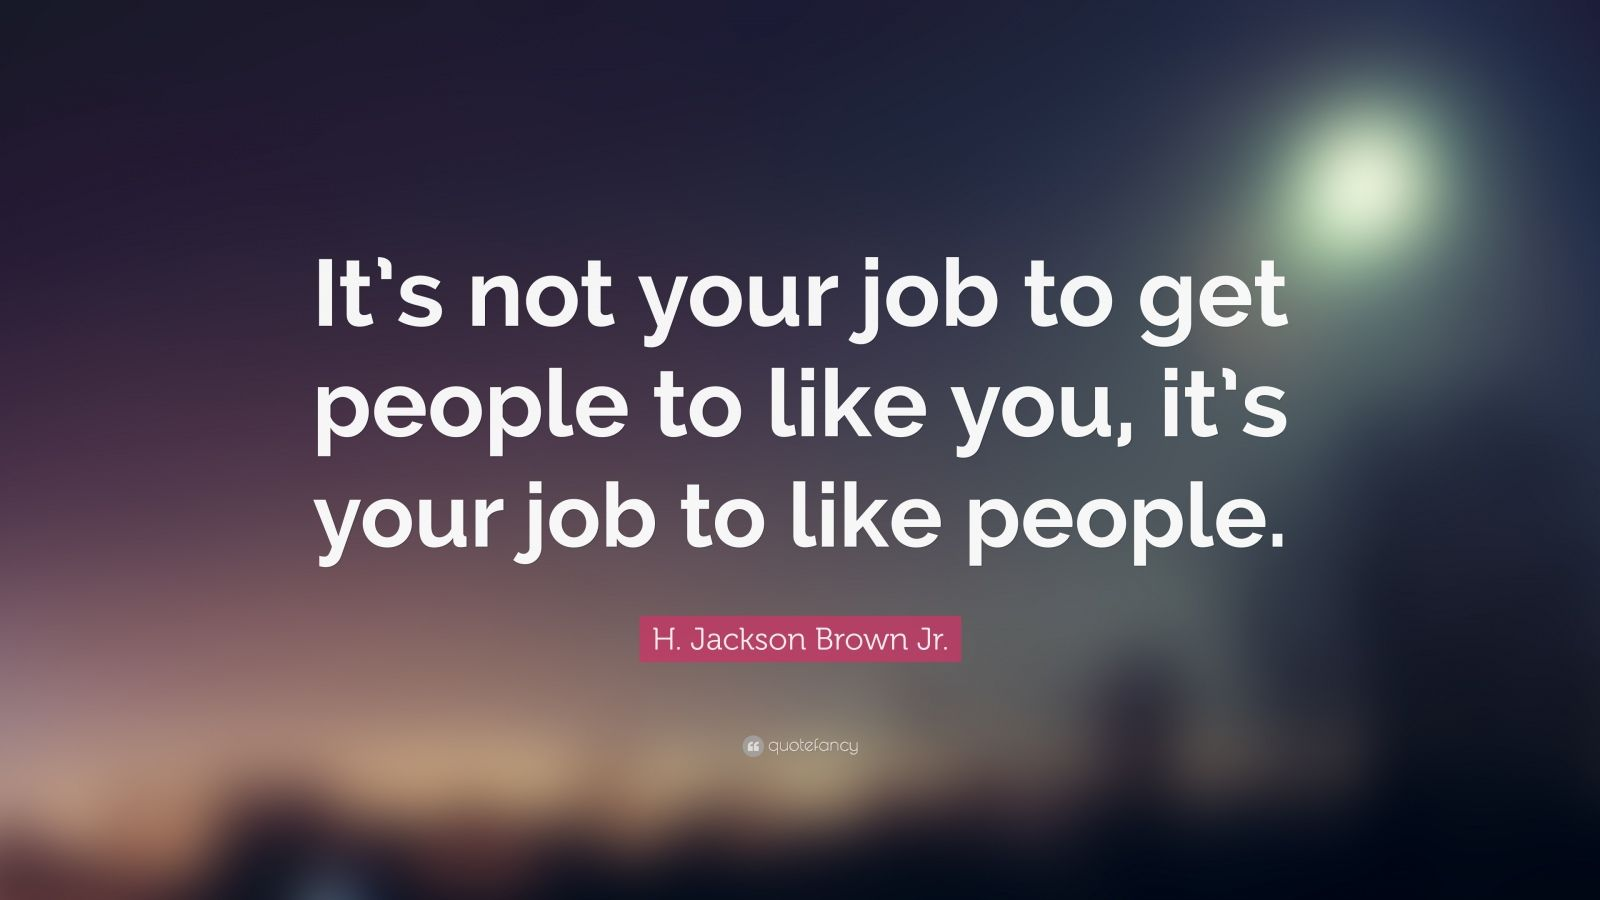 """H. Jackson Brown Jr. Quote: """"It's not your job to get people to like you, it's your job to like people."""""""